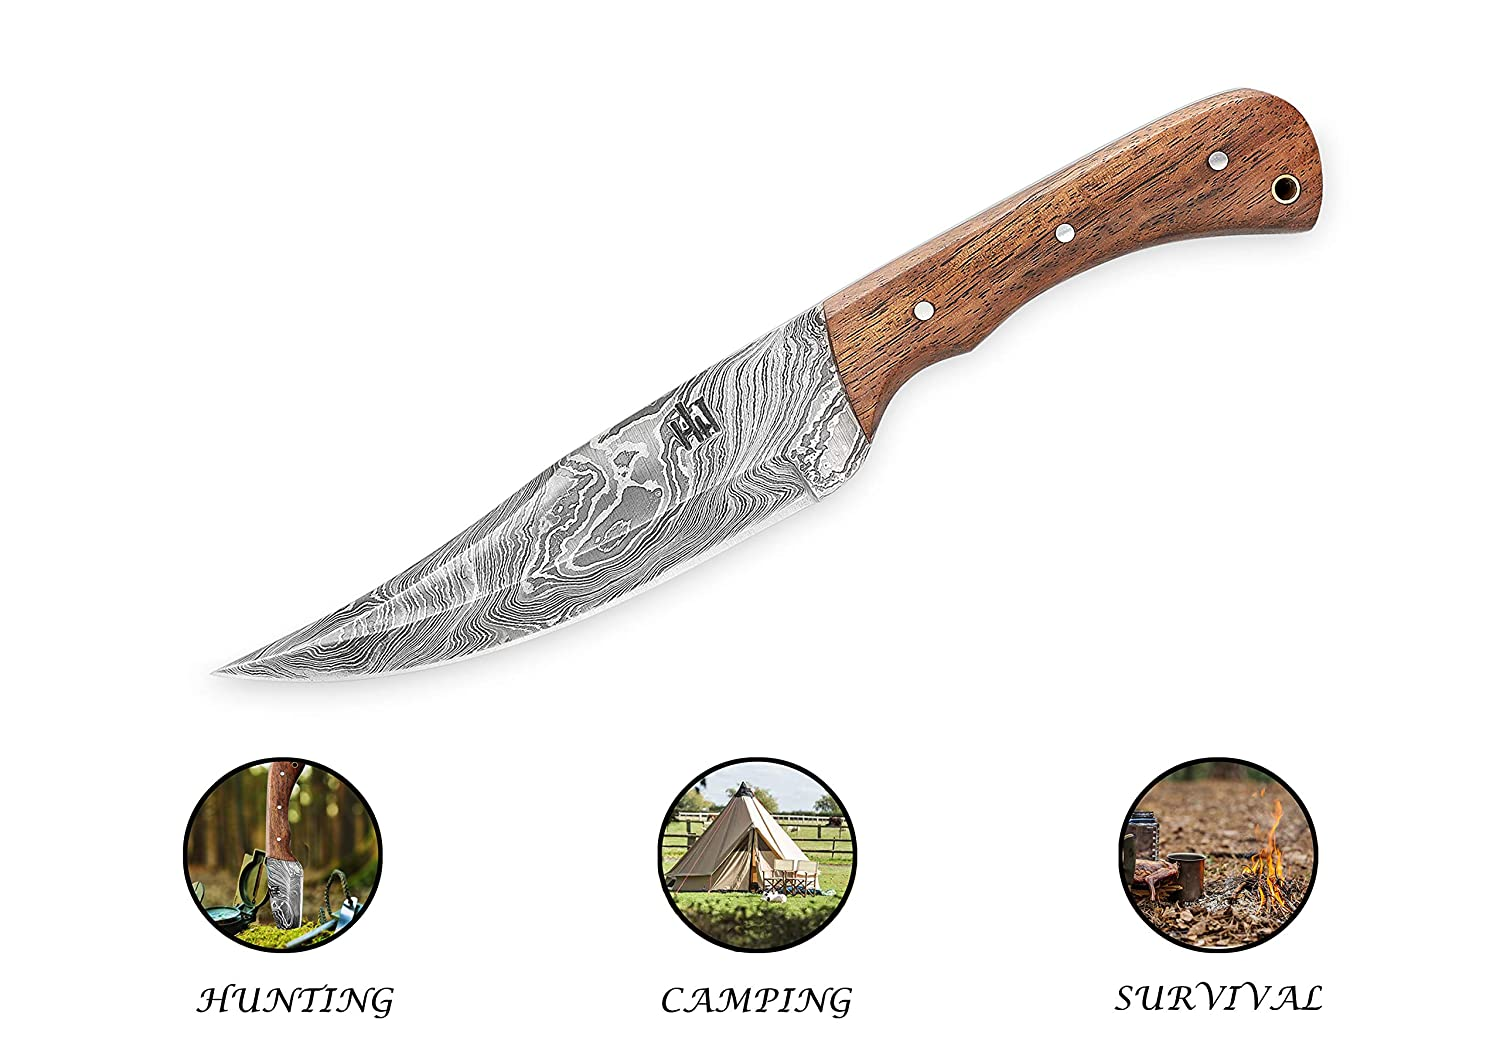 Hobby Hut HH-402, 11 inch Bushcraft Damascus Steel Fixed Blade Knife|Hunting Knife, Walnut Wood Handle|Leather Sheath|Full Tang| Outdoor Razor Sharp ...